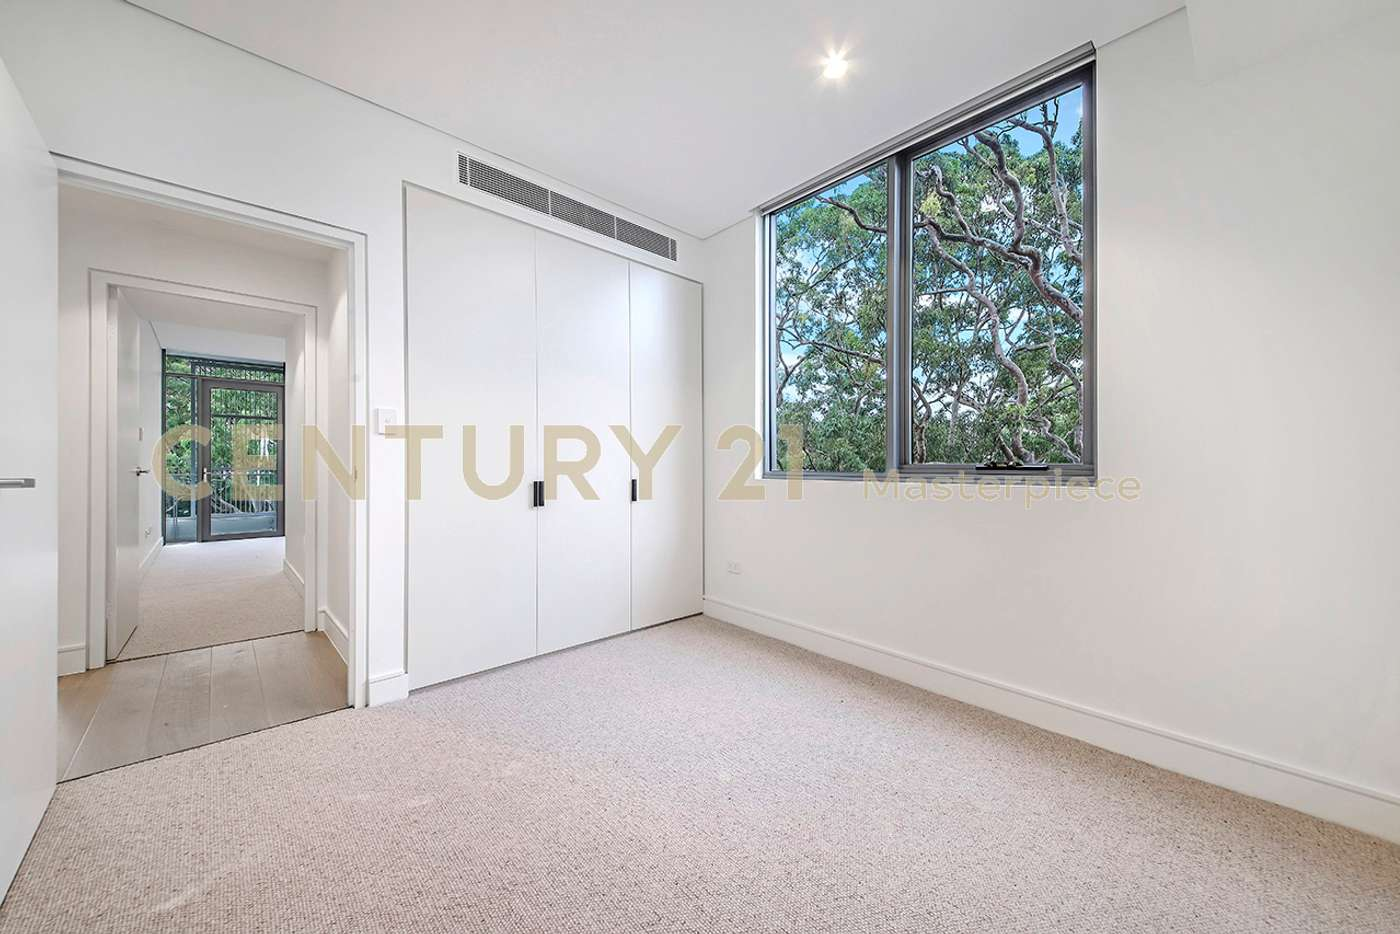 Fifth view of Homely apartment listing, 61/5 Milray Street, Lindfield NSW 2070